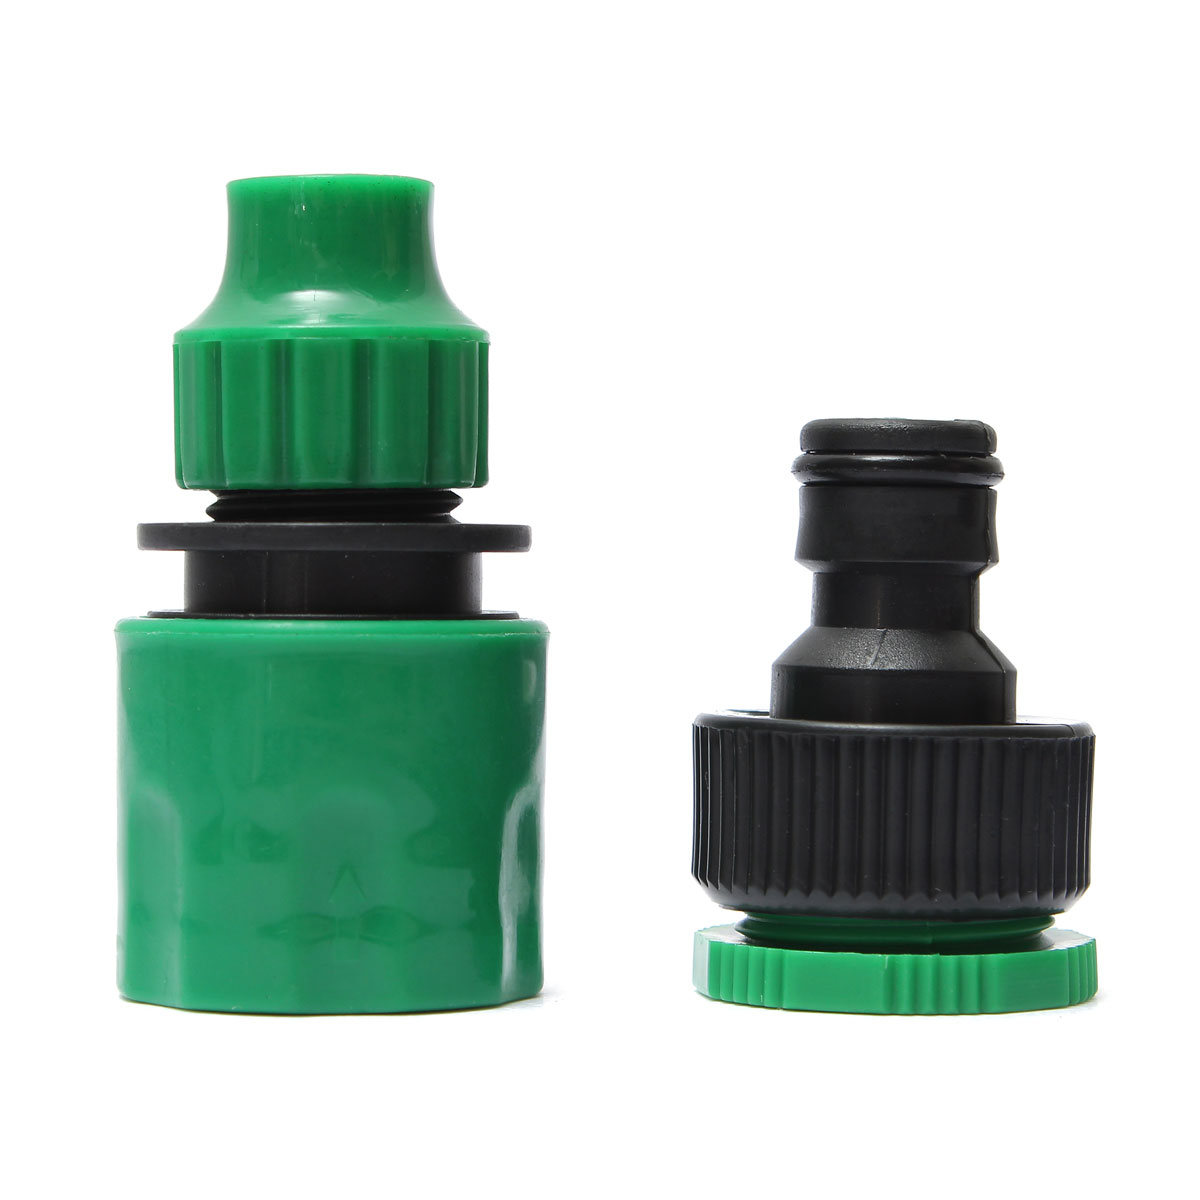 Plastic hose fittings and adapters bing images for Plastic water pipe